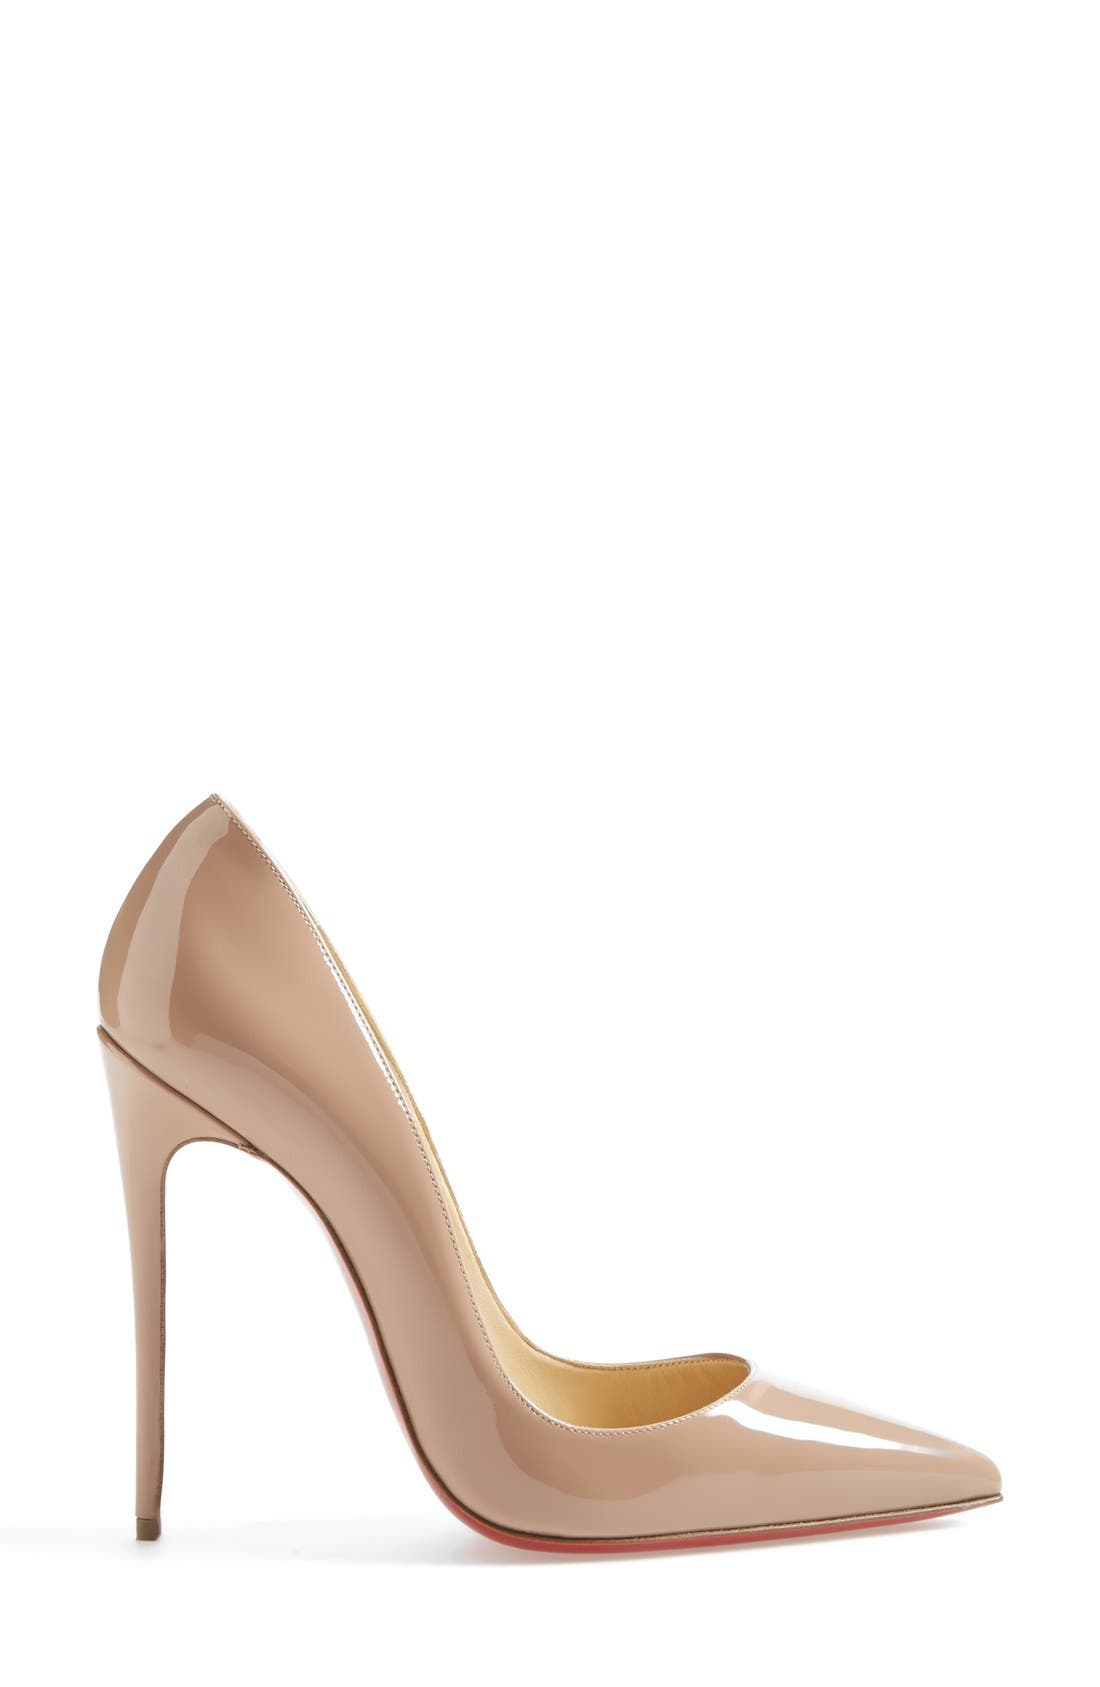 'So Kate' Pointy Toe Pump,                             Alternate thumbnail 4, color,                             Nude